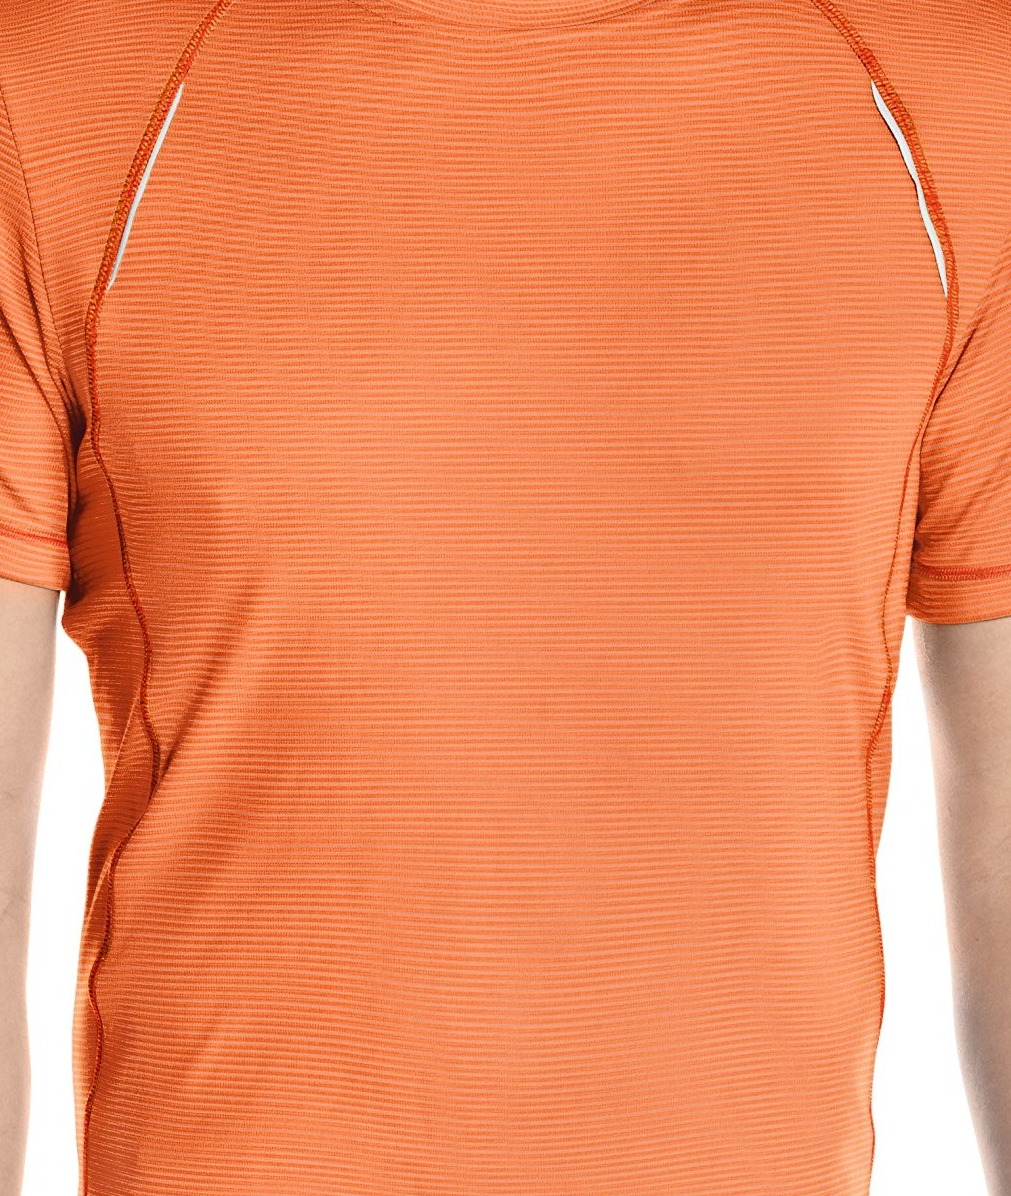 Asics-NEW-Striped-Mens-Shosha-Performance-Short-Sleeve-Tee-T-Shirt-40 thumbnail 13